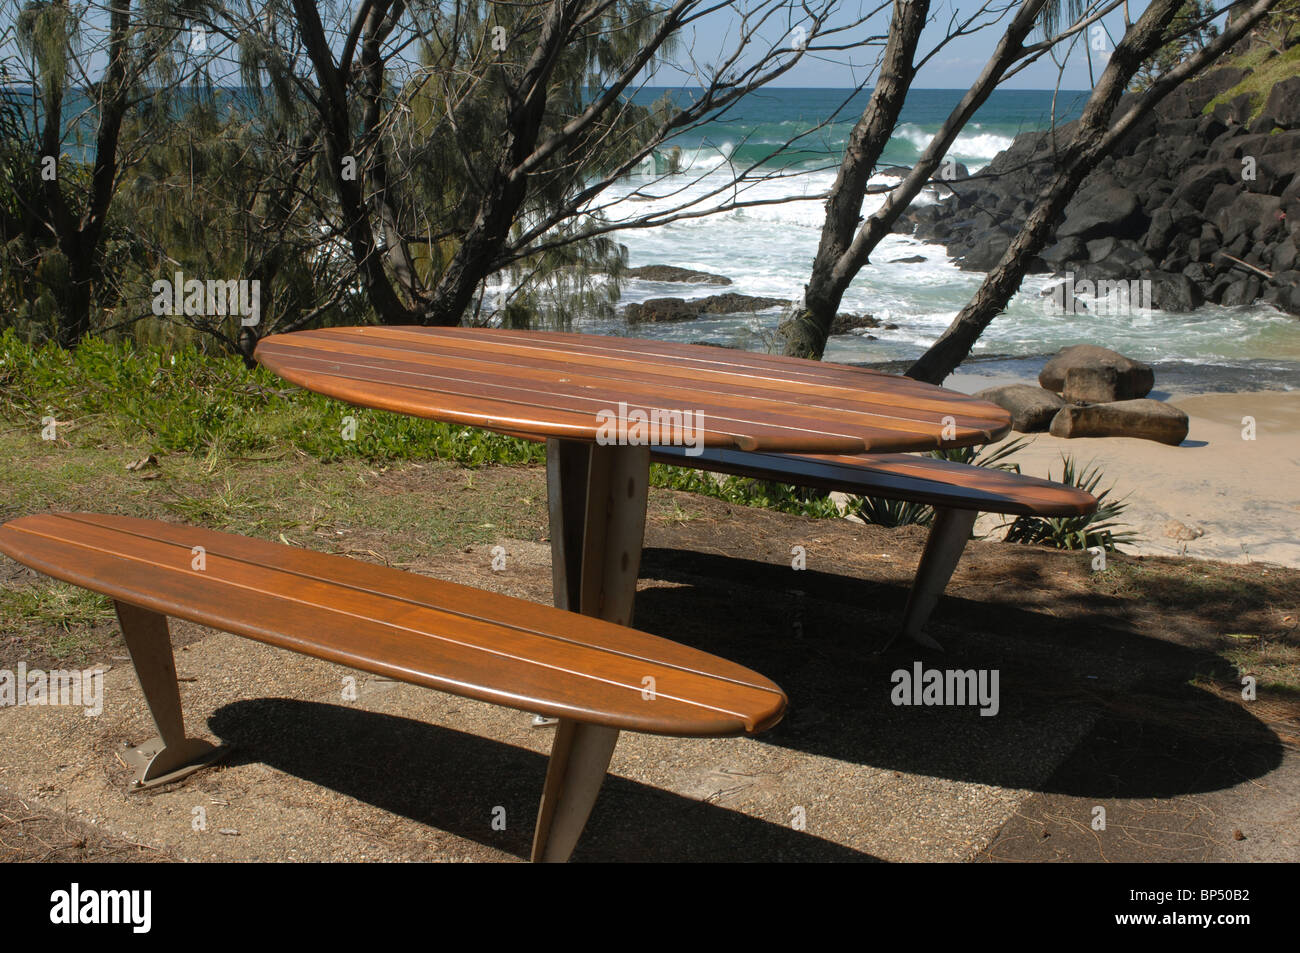 surfboard seats stock photos surfboard seats stock images alamy